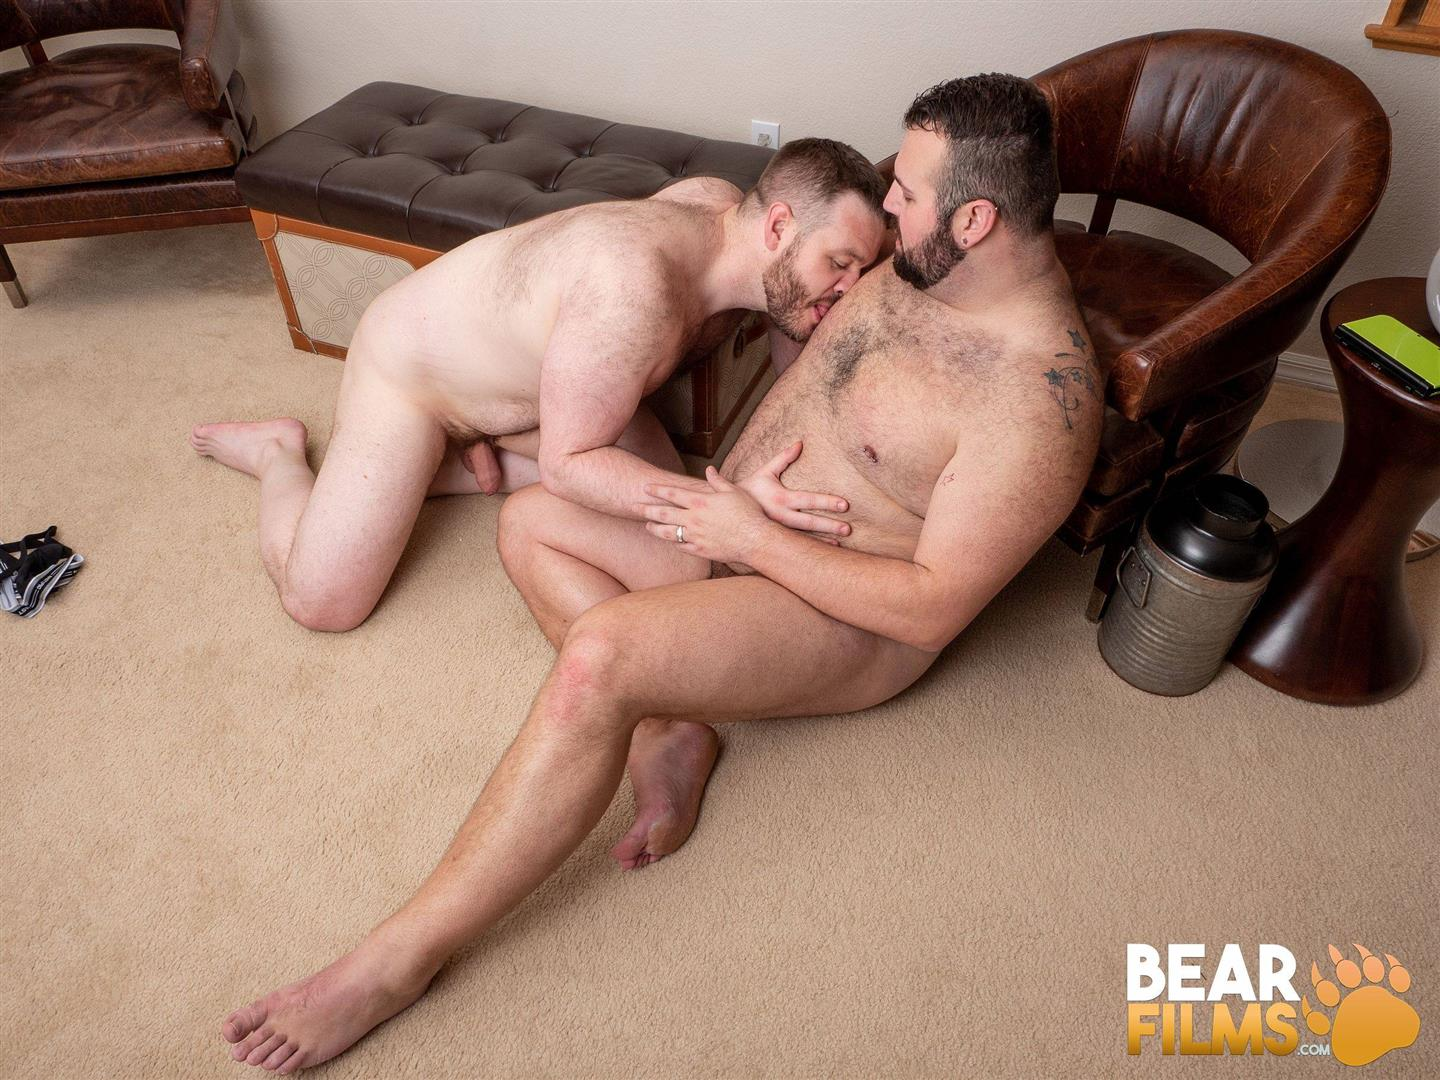 Bear-Films-Rex-Blue-and-John-Thomas-Chubby-Hairy-Bear-Getting-Fucked-Bareback-Video-25 Bear Films: John Thomas Barebacks Hairy Chubby Bear Rex Blue